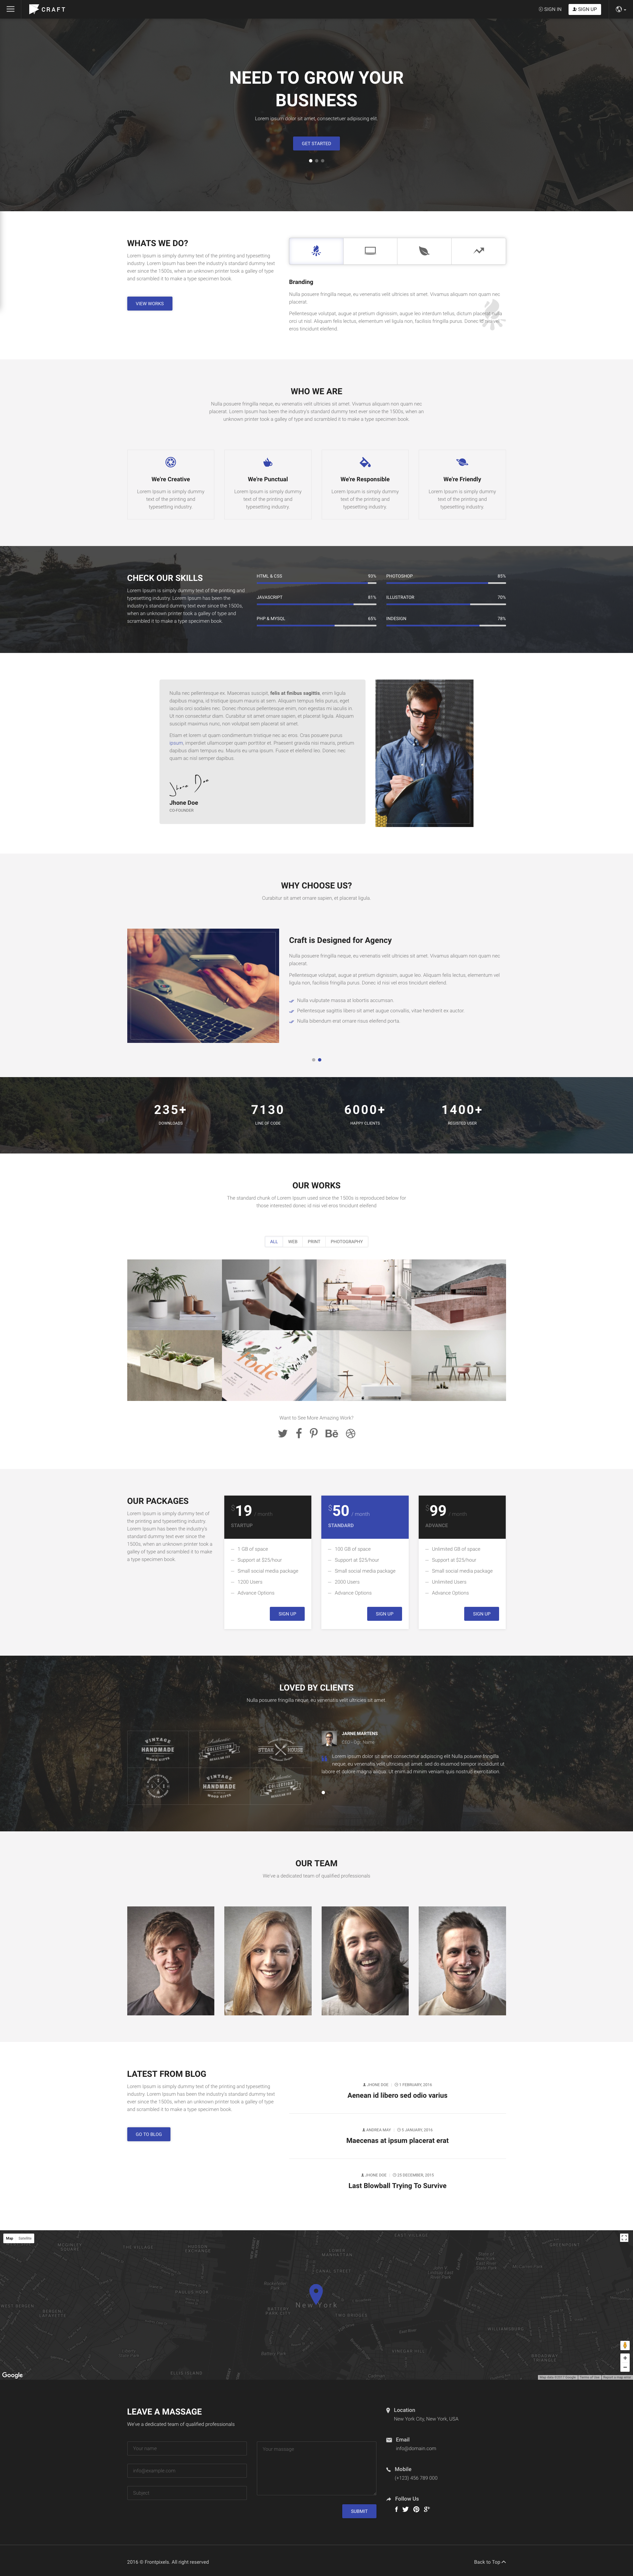 Craft - Responsive Material Design HTML Template. It is simple and ...